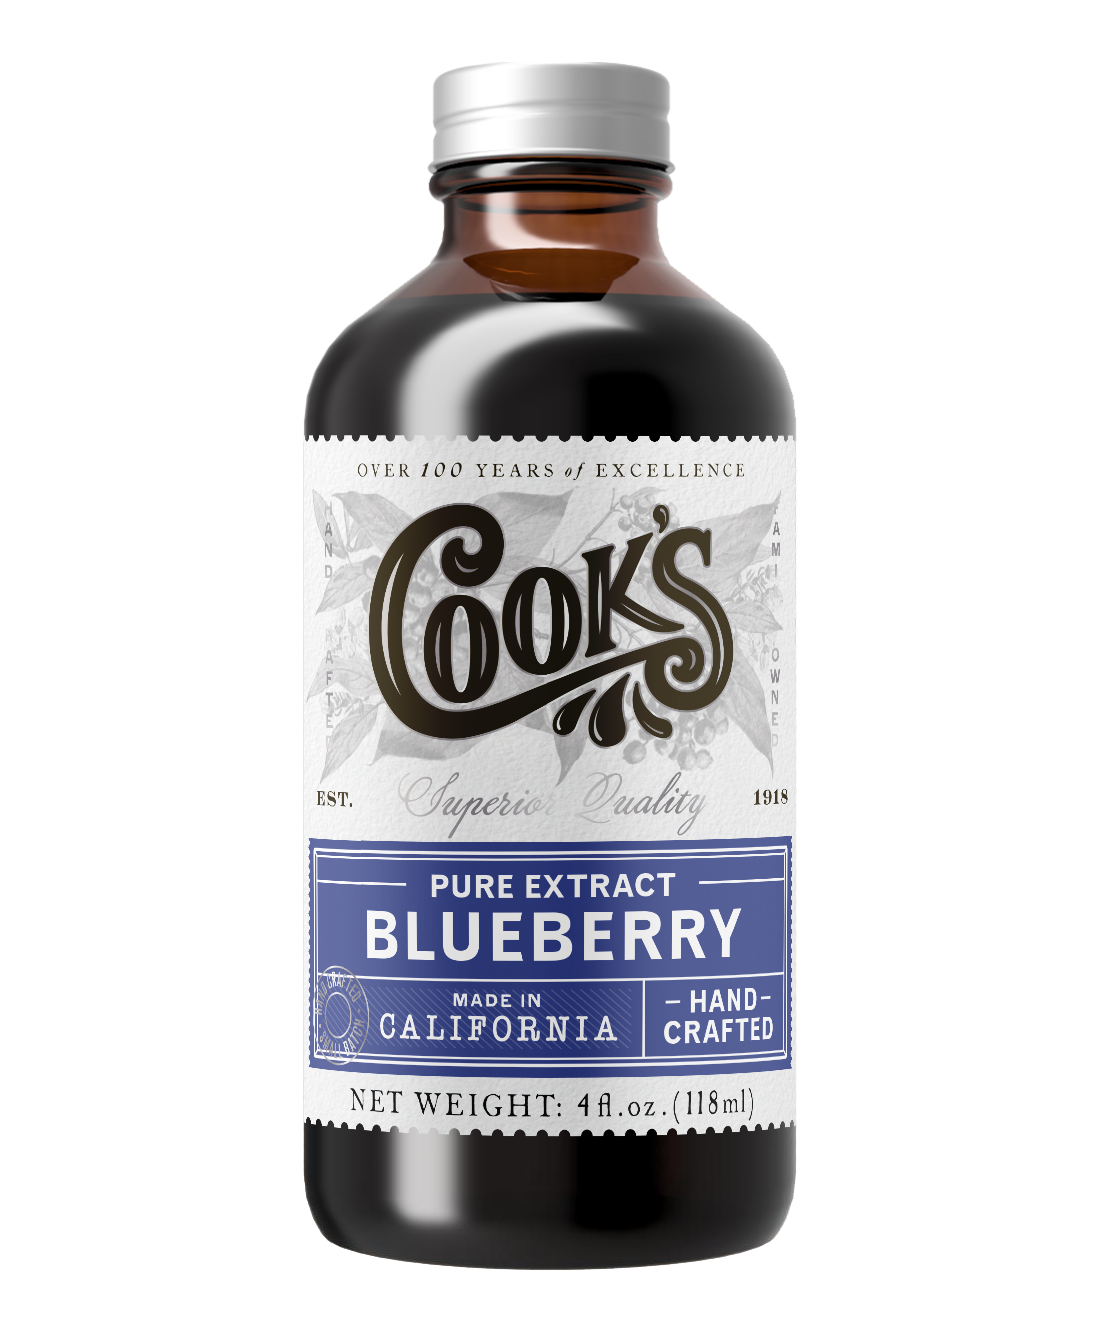 Blueberry Extract (Pure)